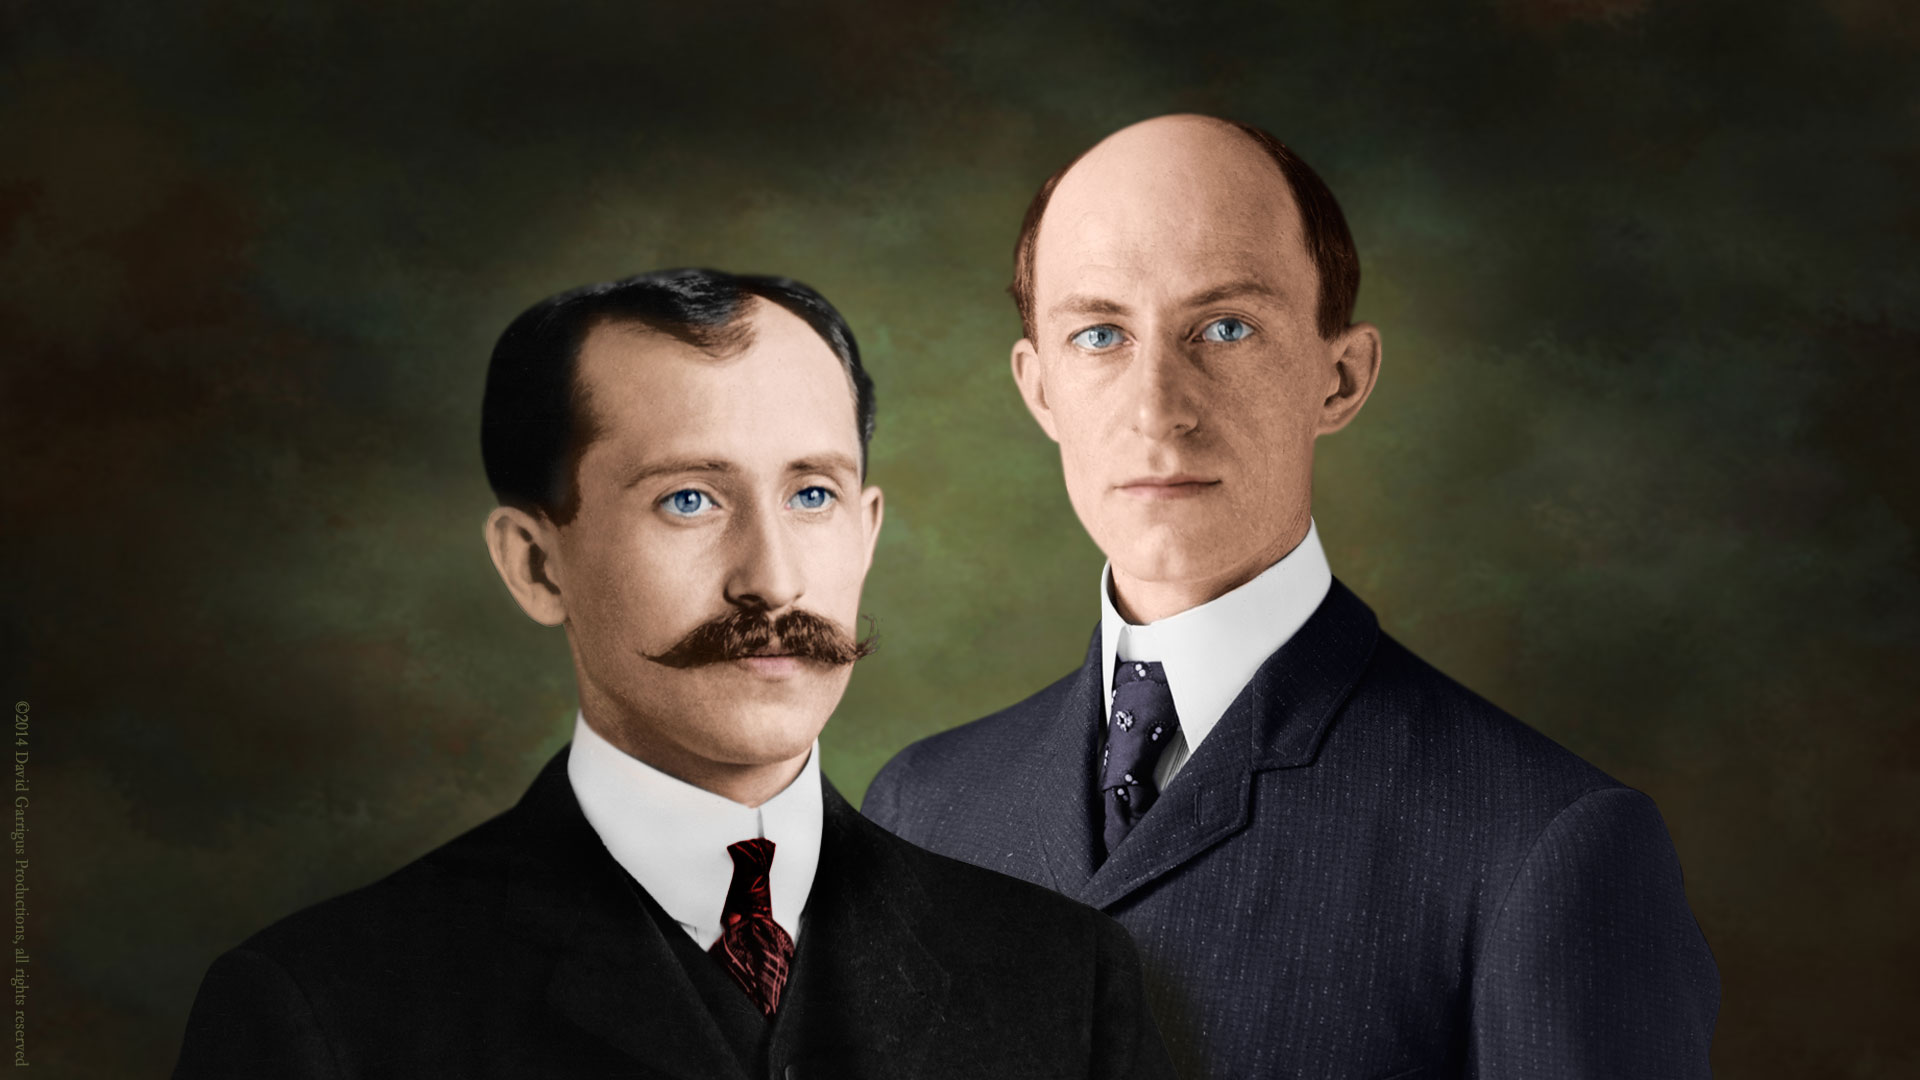 orville and willbur wright 10 fun facts 1 the wright brothers  orville piloted the first successful flightp  the wright brotthers improvised when it came to making the wind tunnels to.